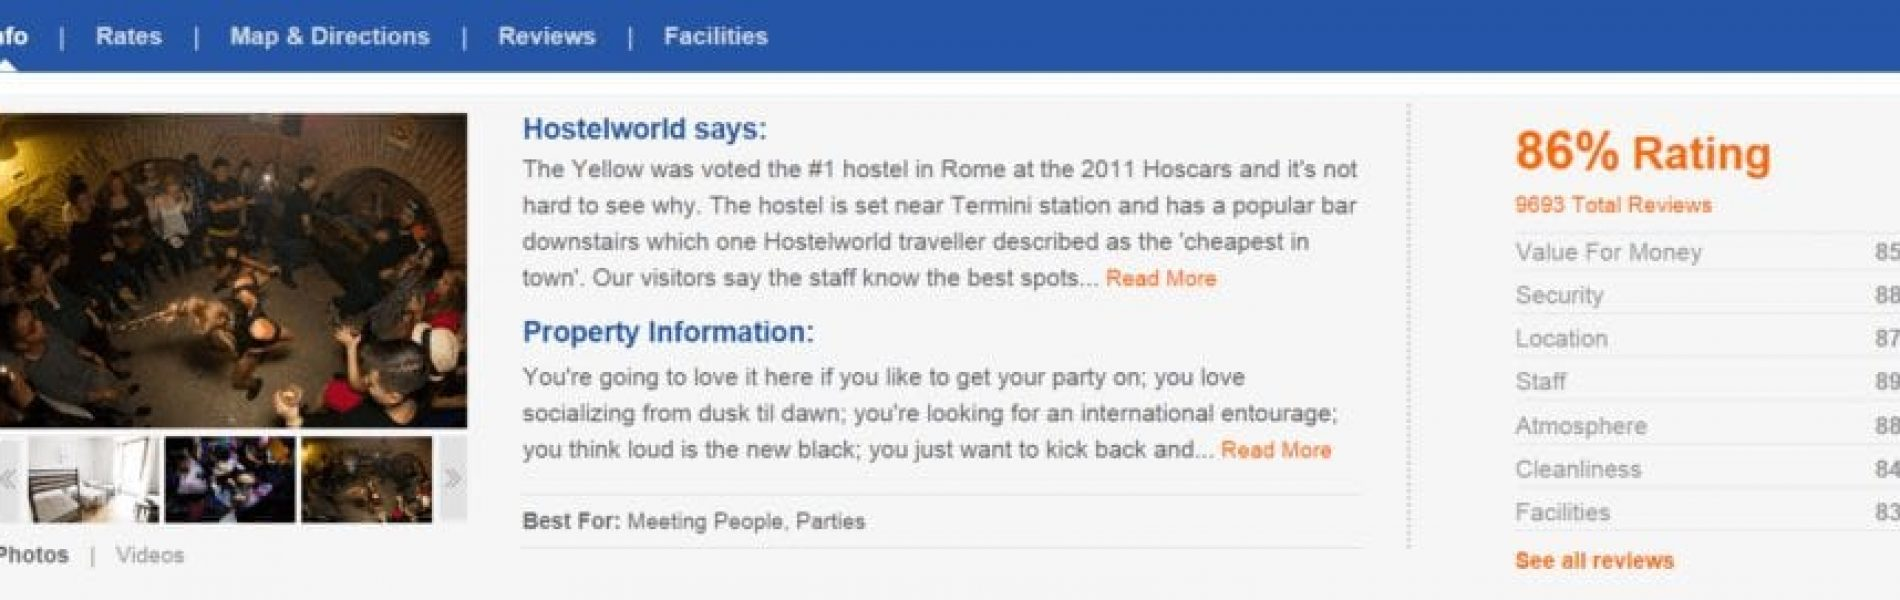 tips for finding a good hostel